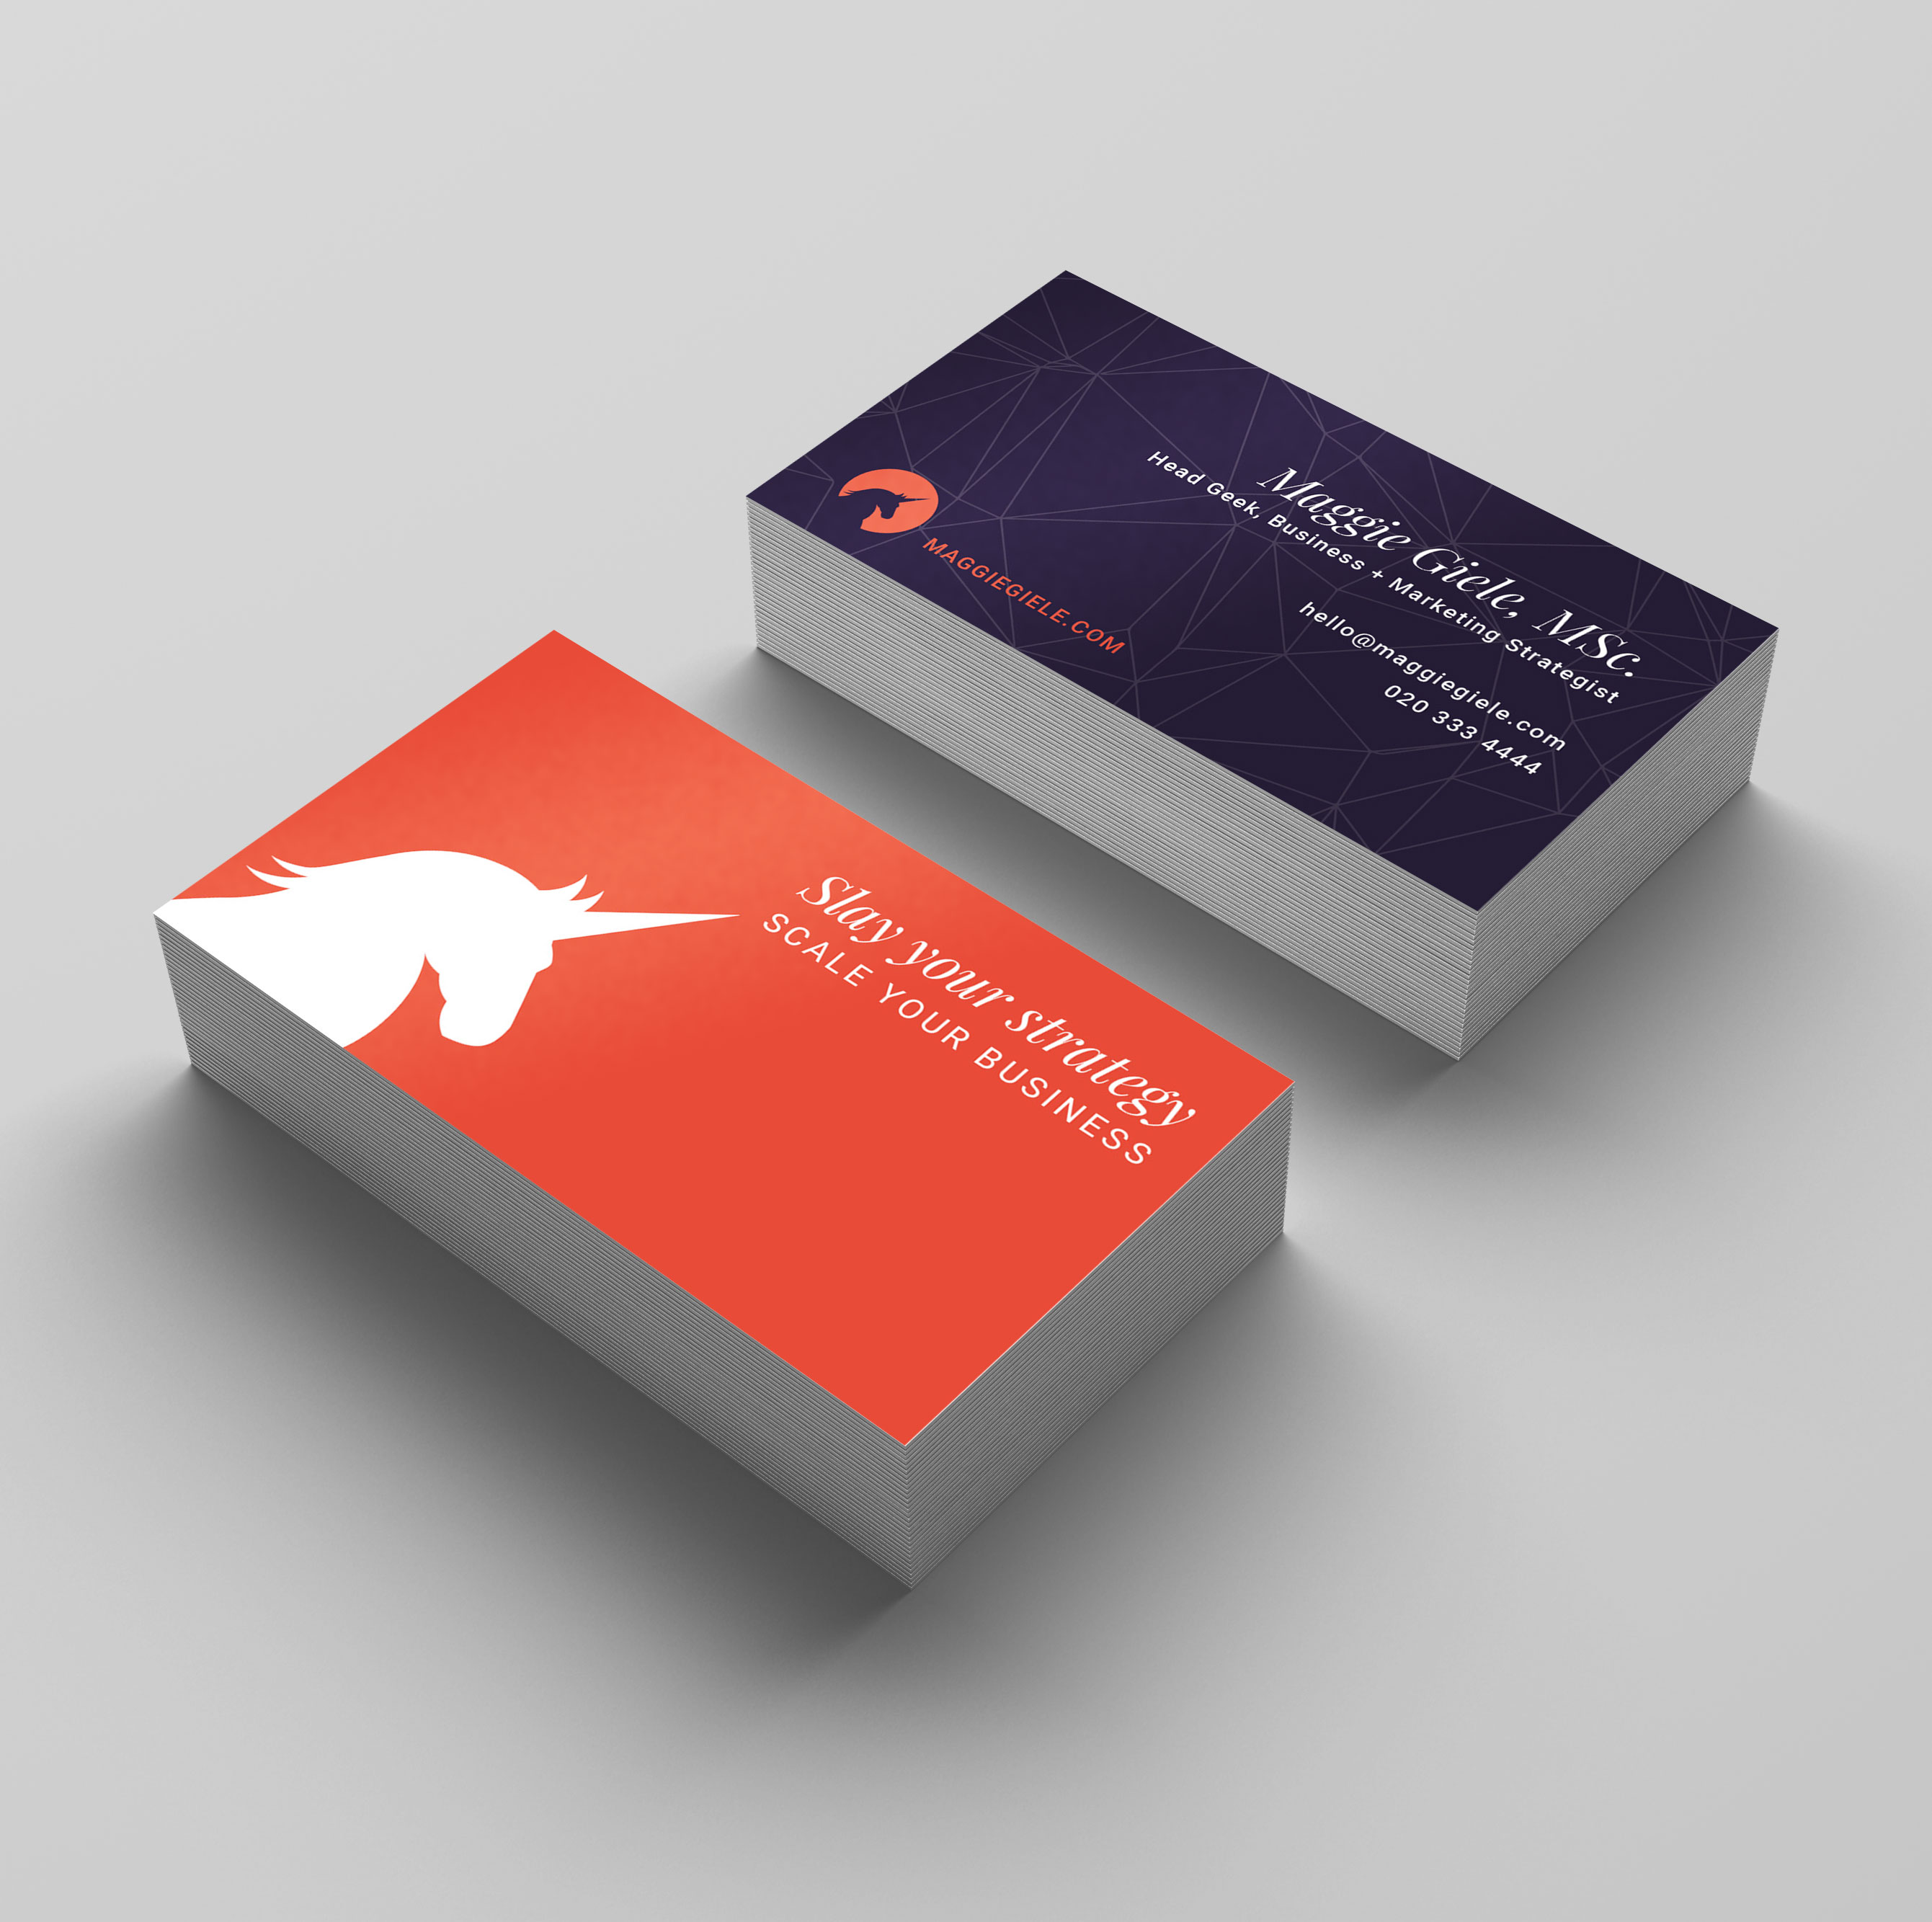 Business cards designed for Maggie Giele, Business & Marketing Strategist, by C&V